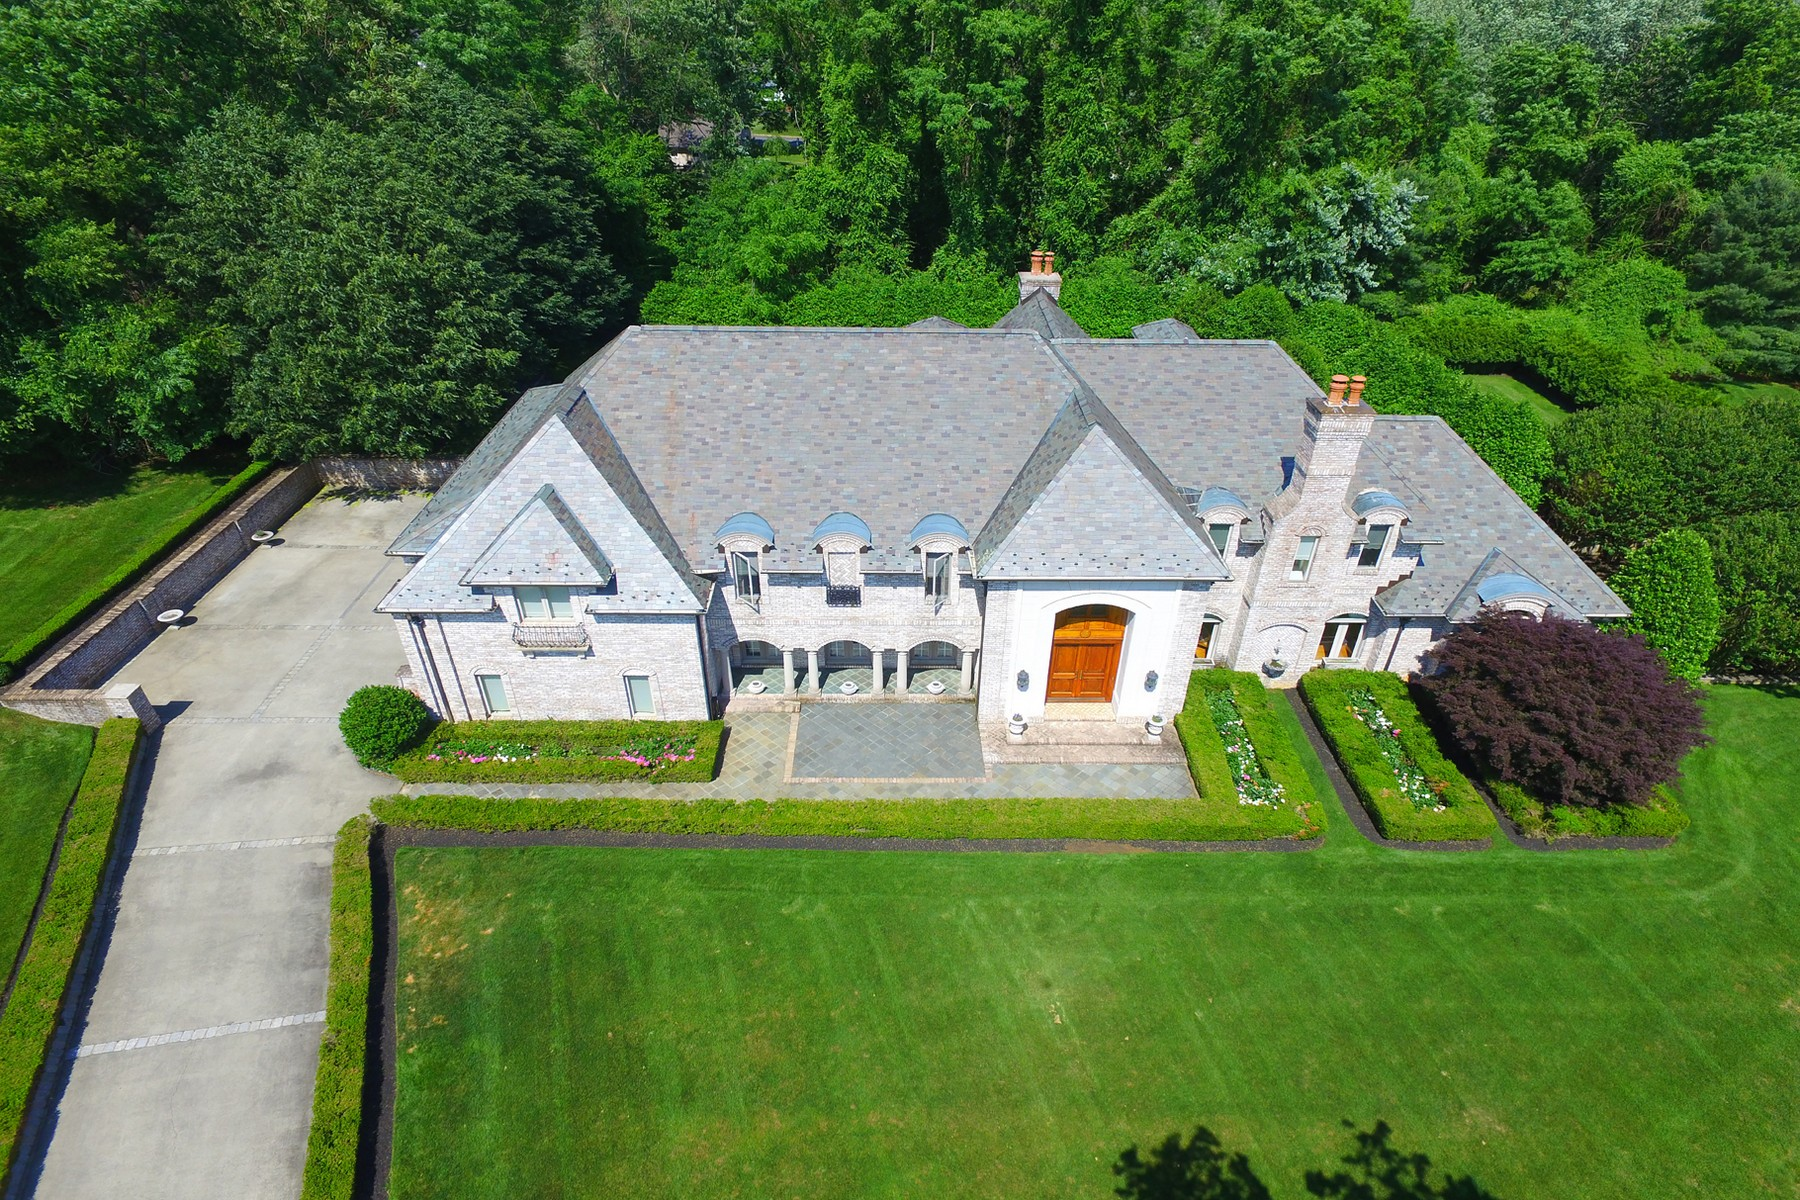 Single Family Home for Sale at French Country Manor 14 Brandywine Ln Colts Neck, 07722 United States